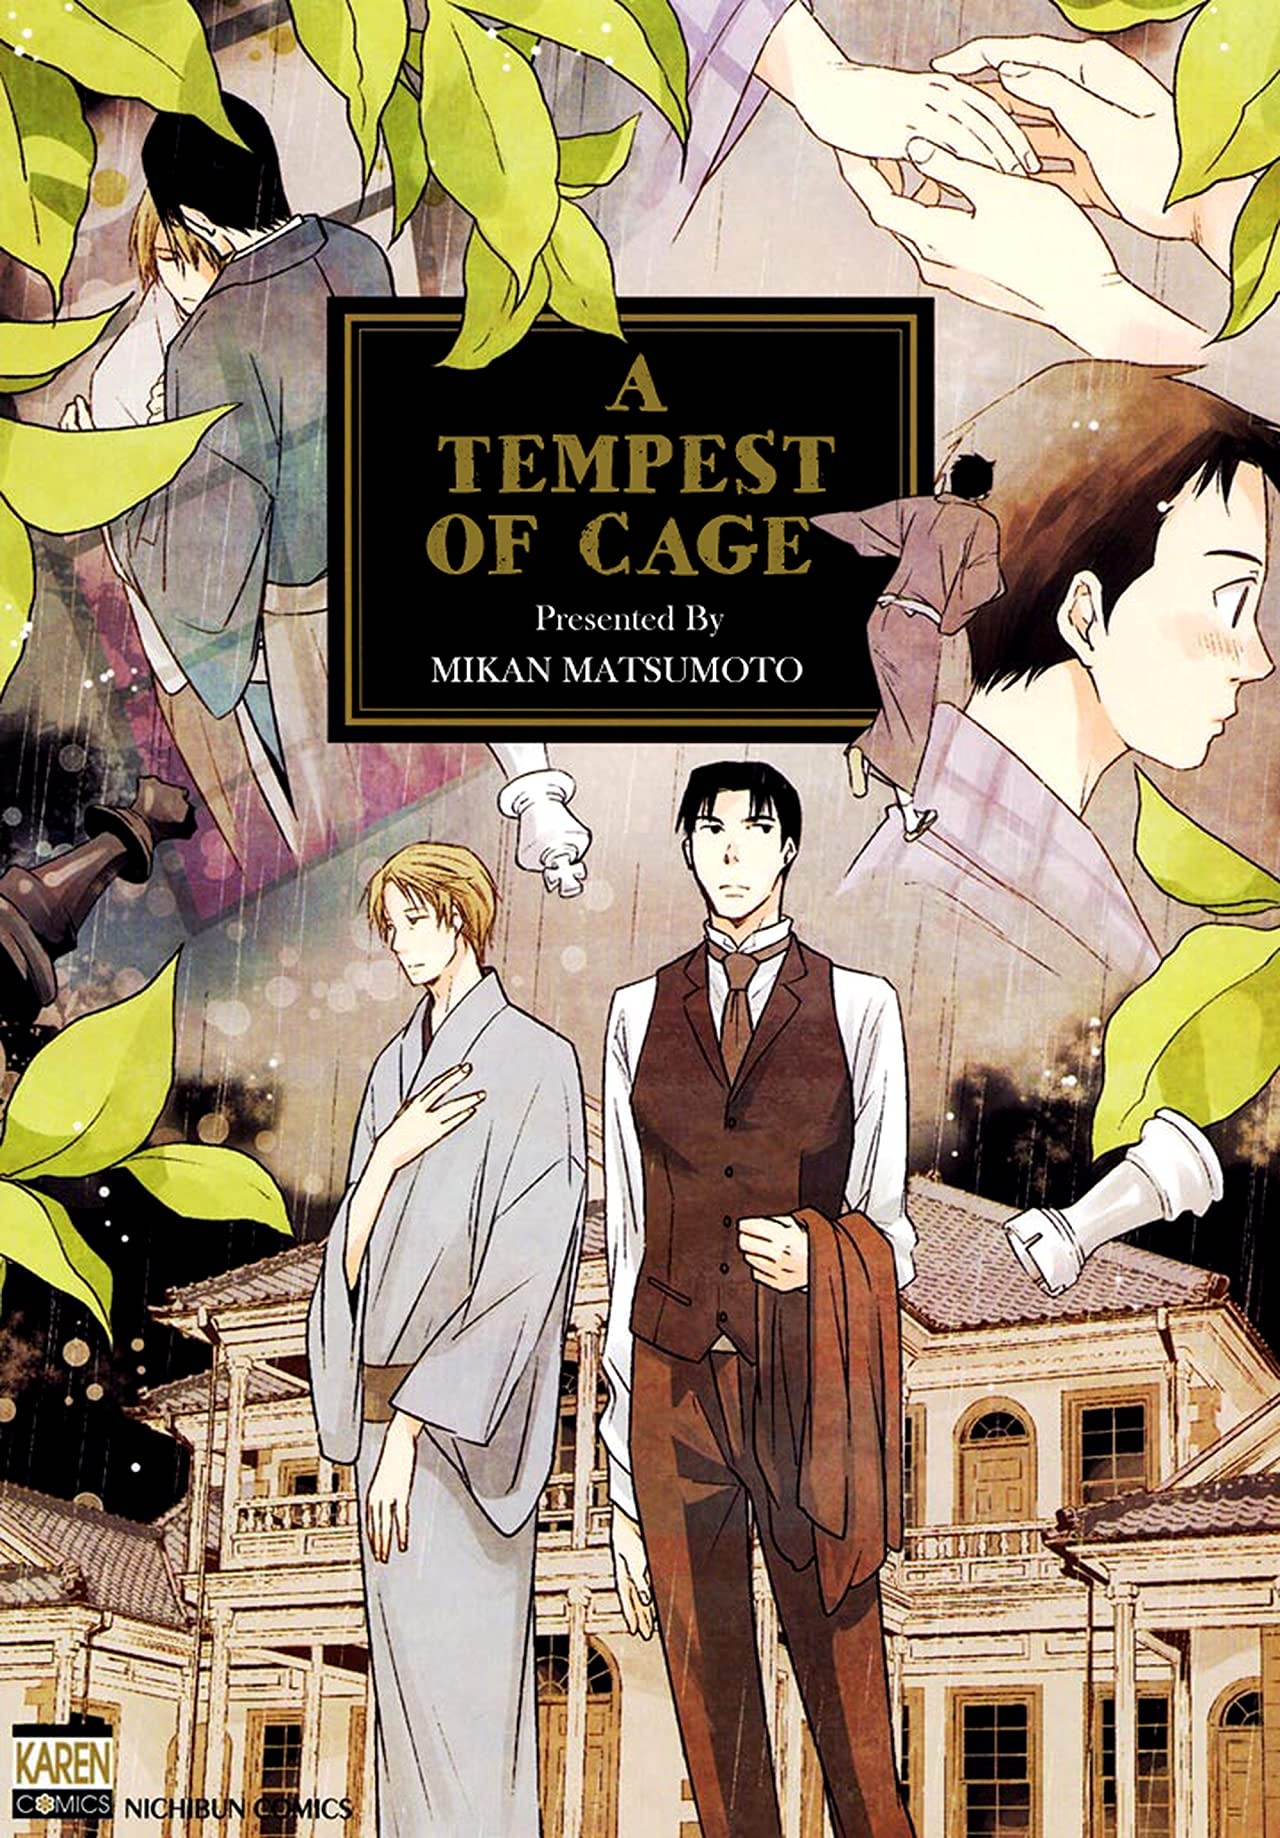 A Tempest of Cage (Yaoi Manga) Vol. 1